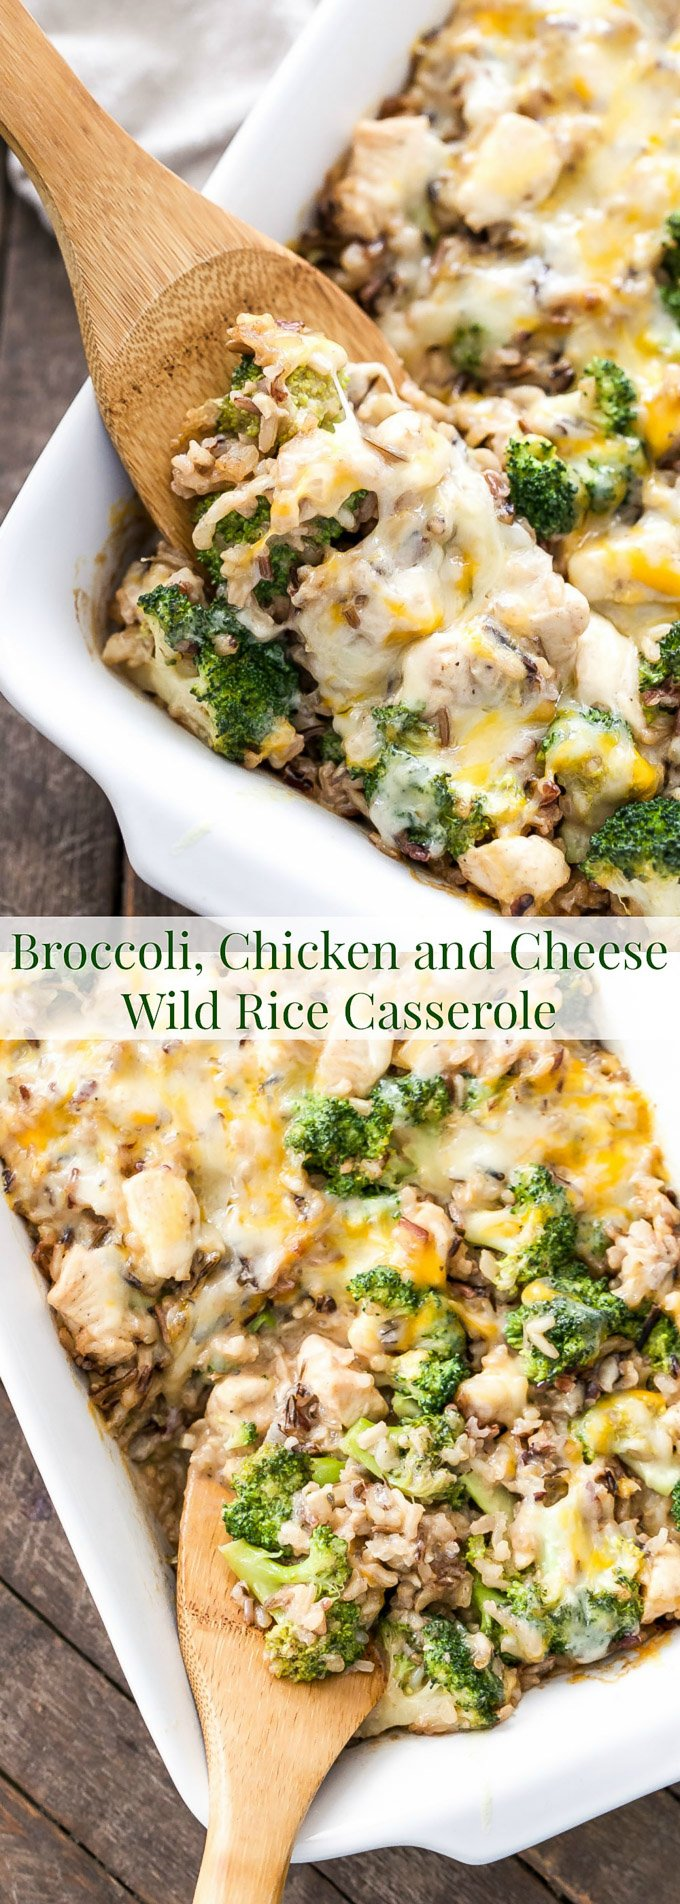 Click Here For The Broccoli Chicken And Cheese Wild Rice Casserole